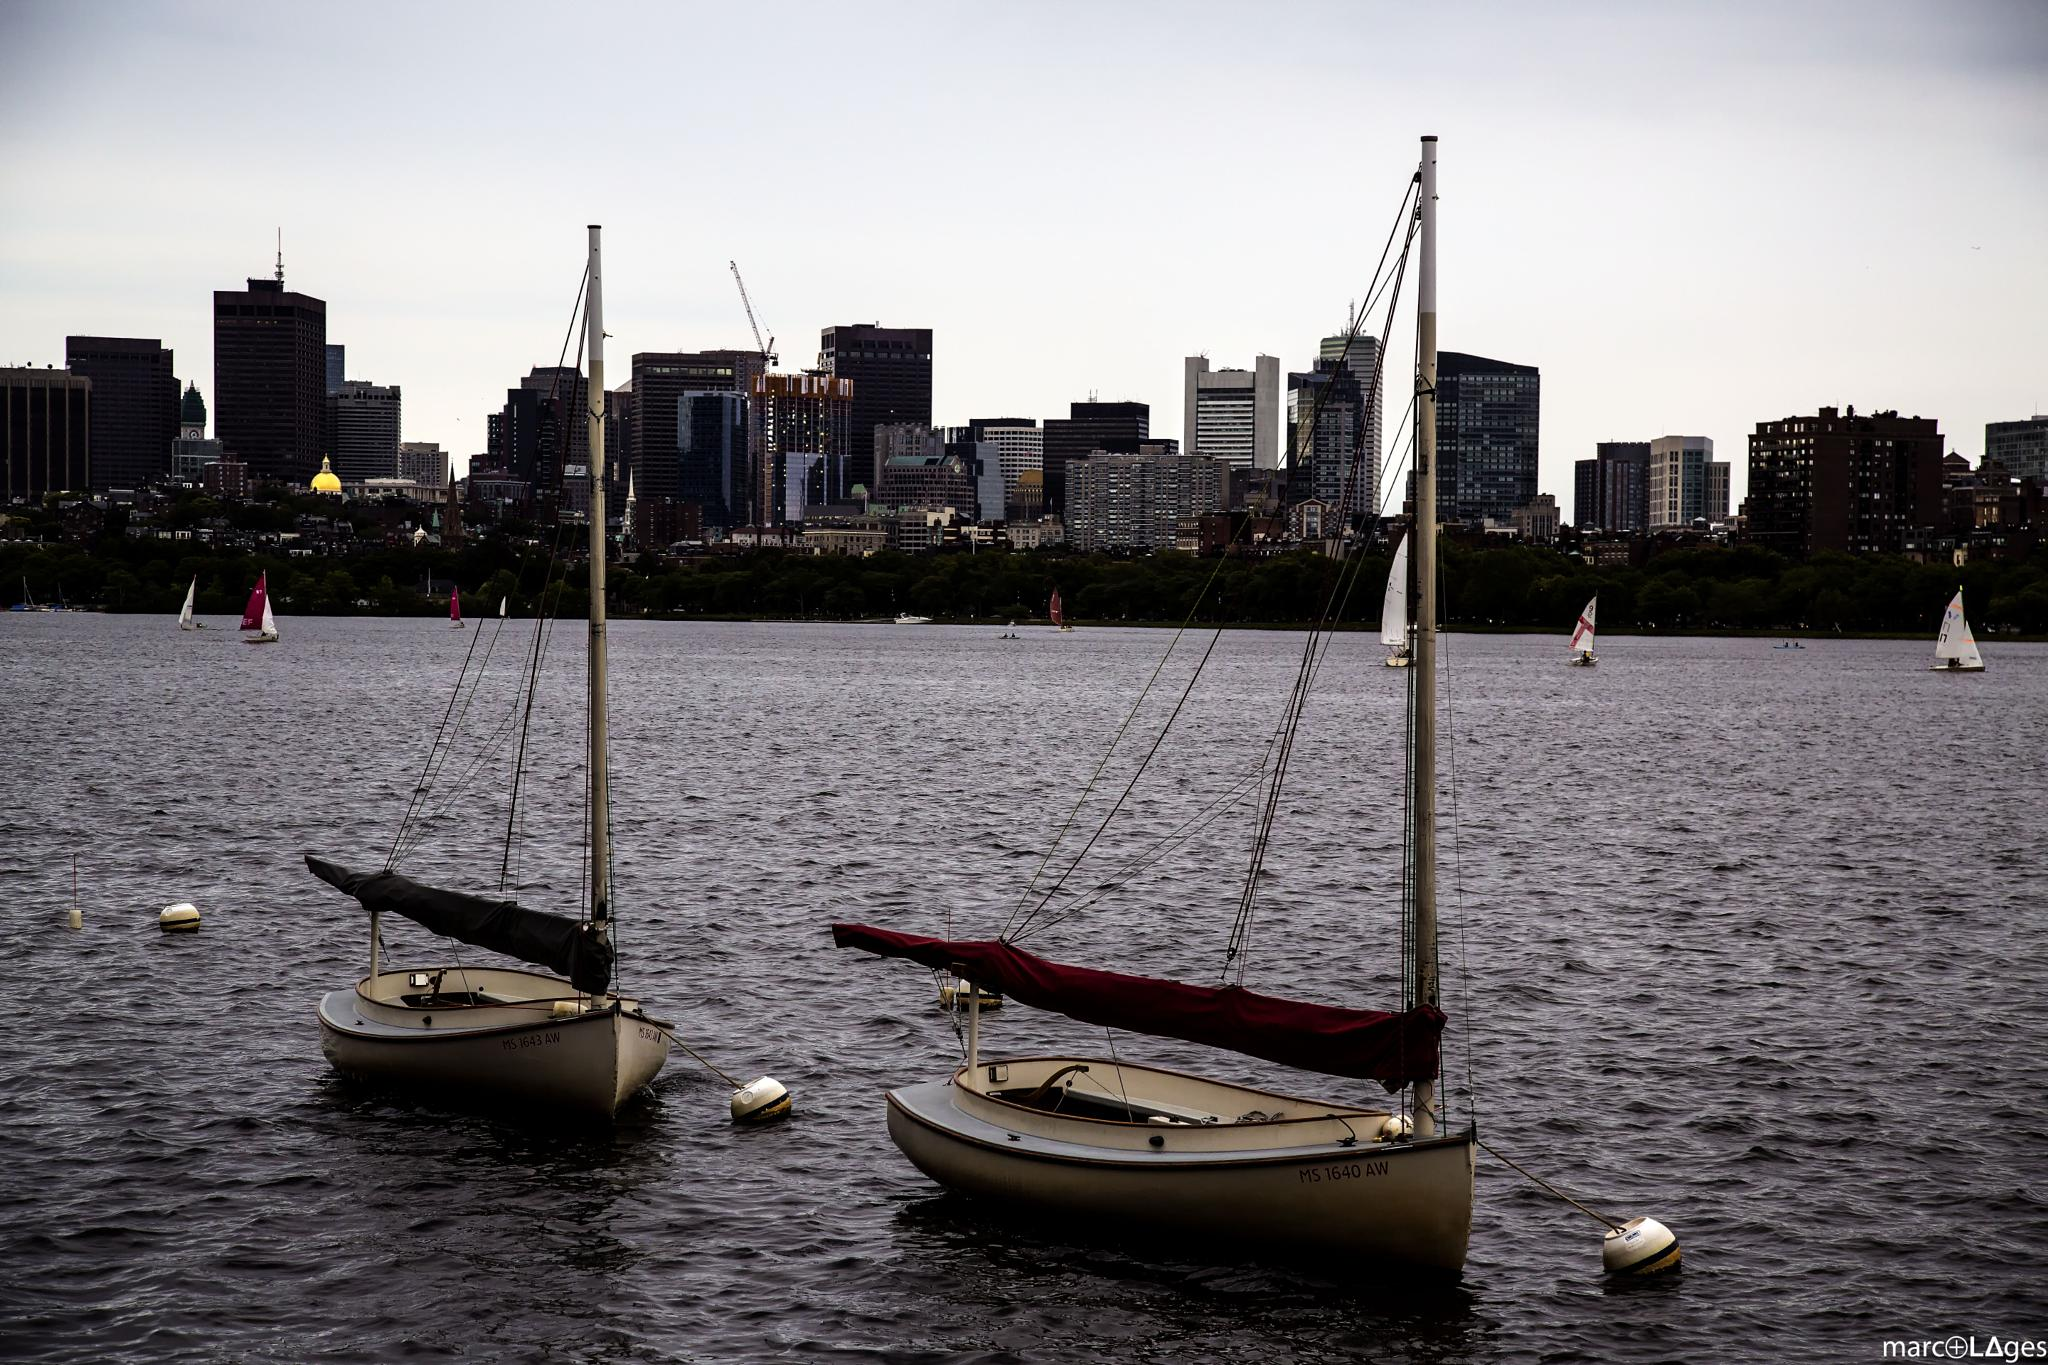 Charles River by marc⊕L∆ges